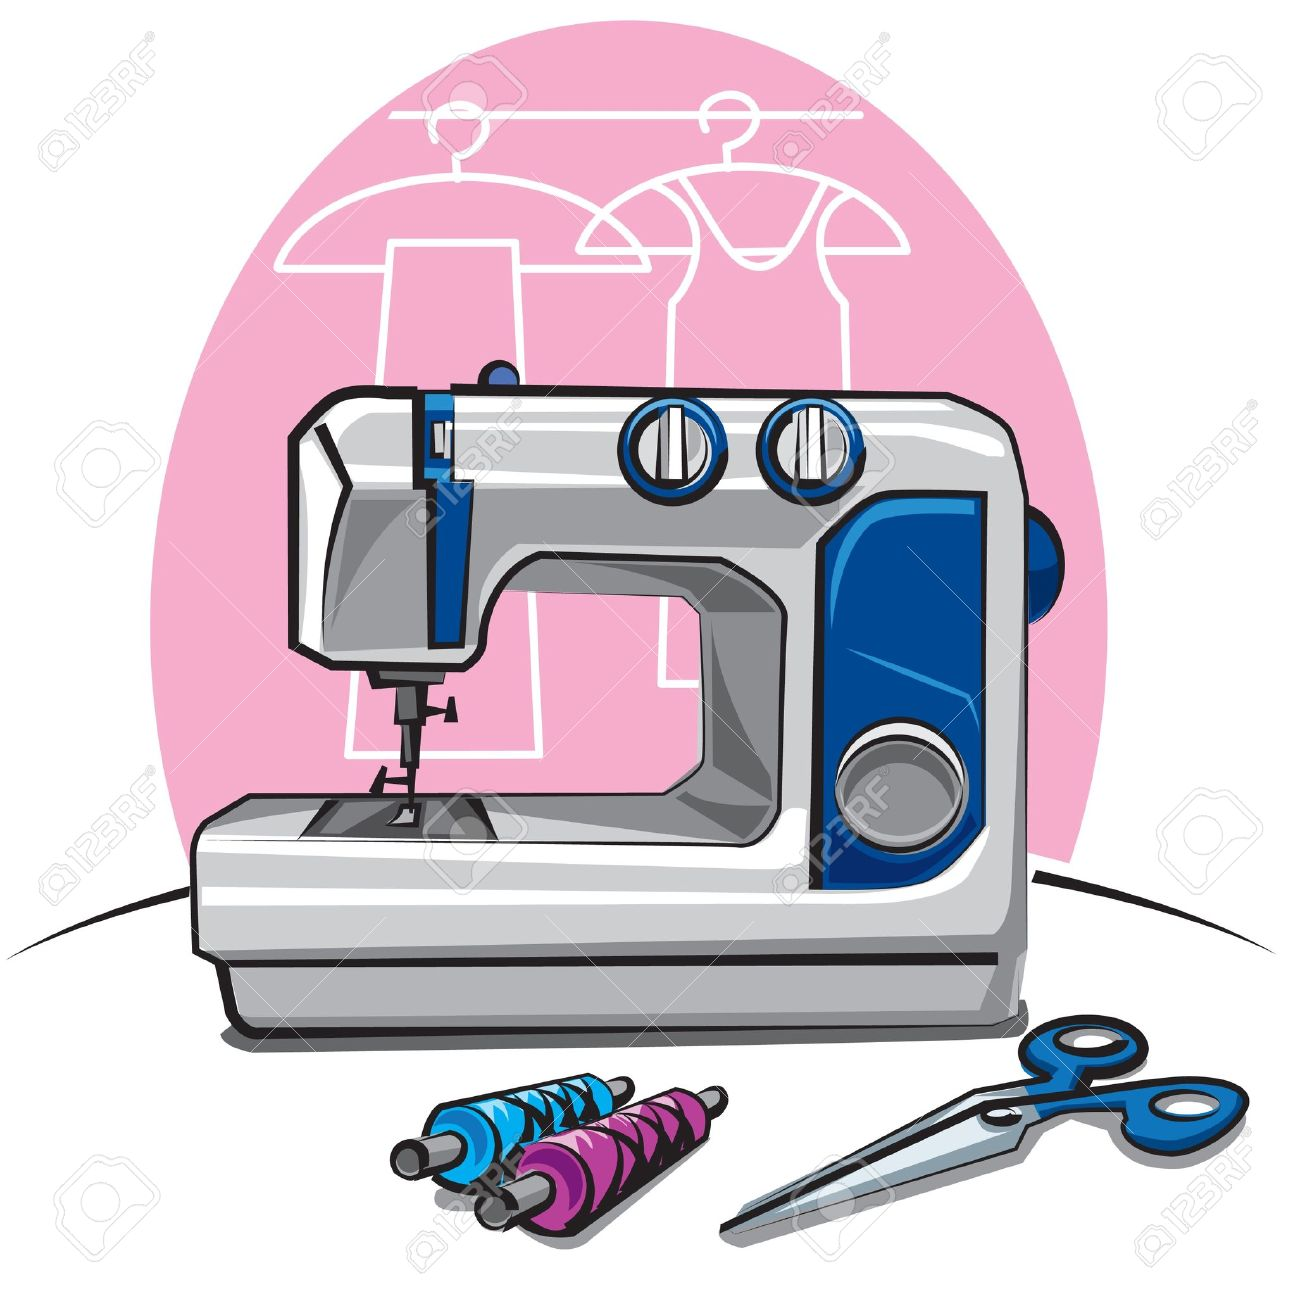 sewing machine Stock Vector - 9602727